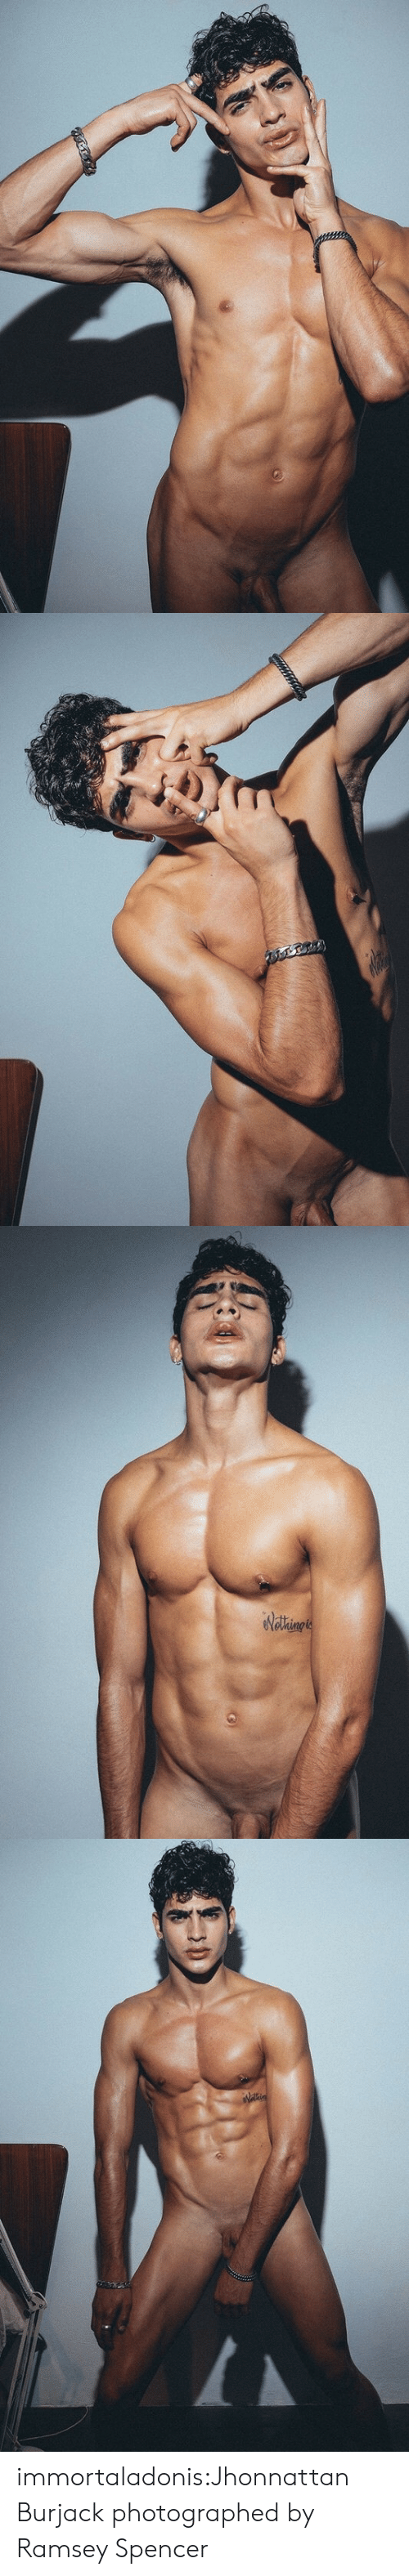 Tumblr, Blog, and Com: immortaladonis:Jhonnattan Burjack photographed by Ramsey Spencer